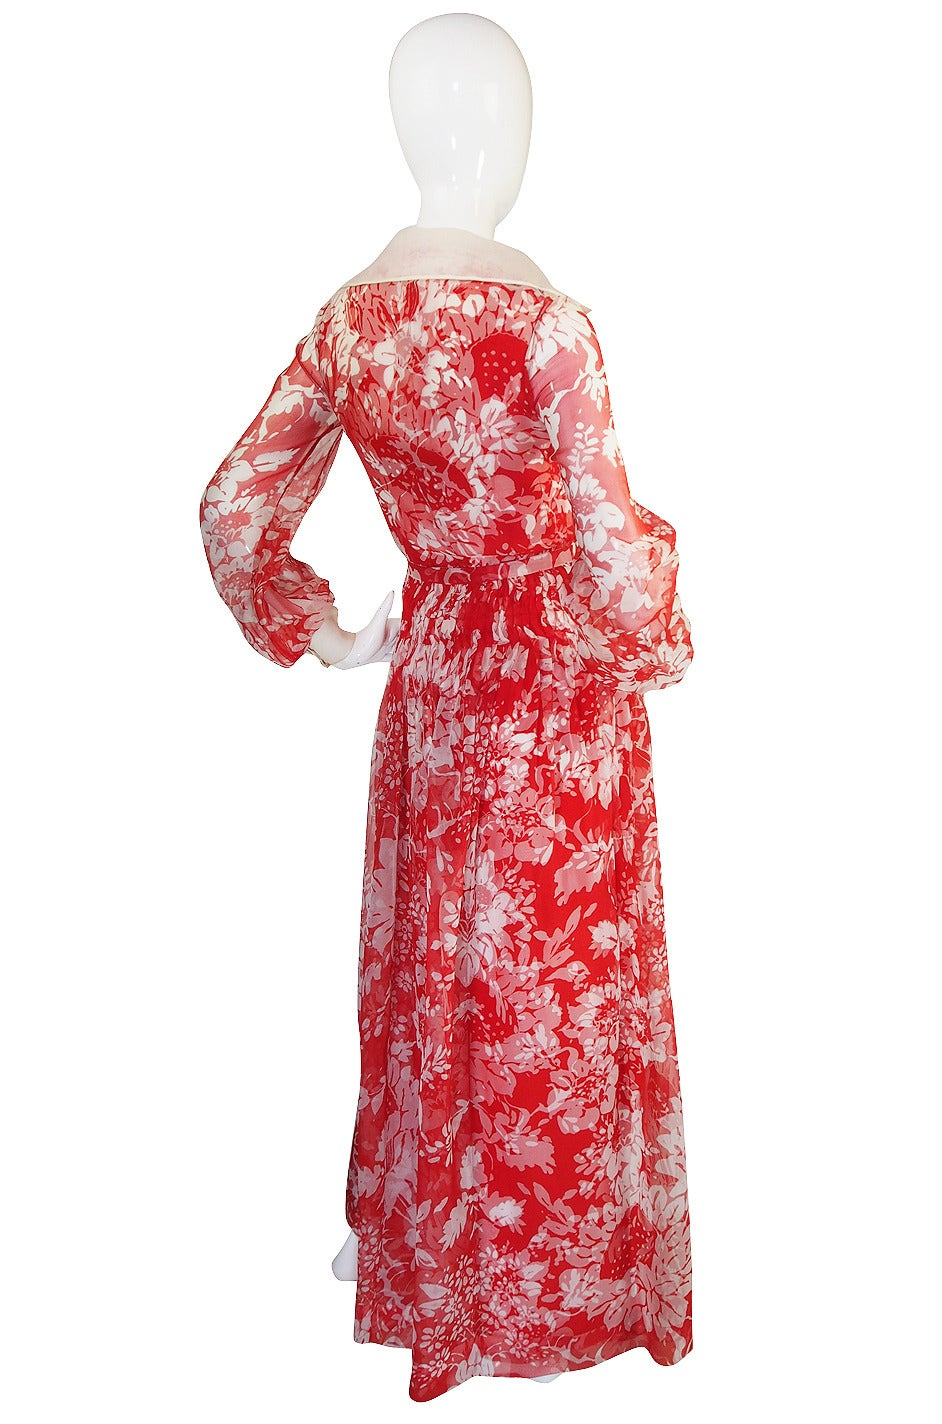 1973 Haute Couture Chanel Red Print Silk Dress 2